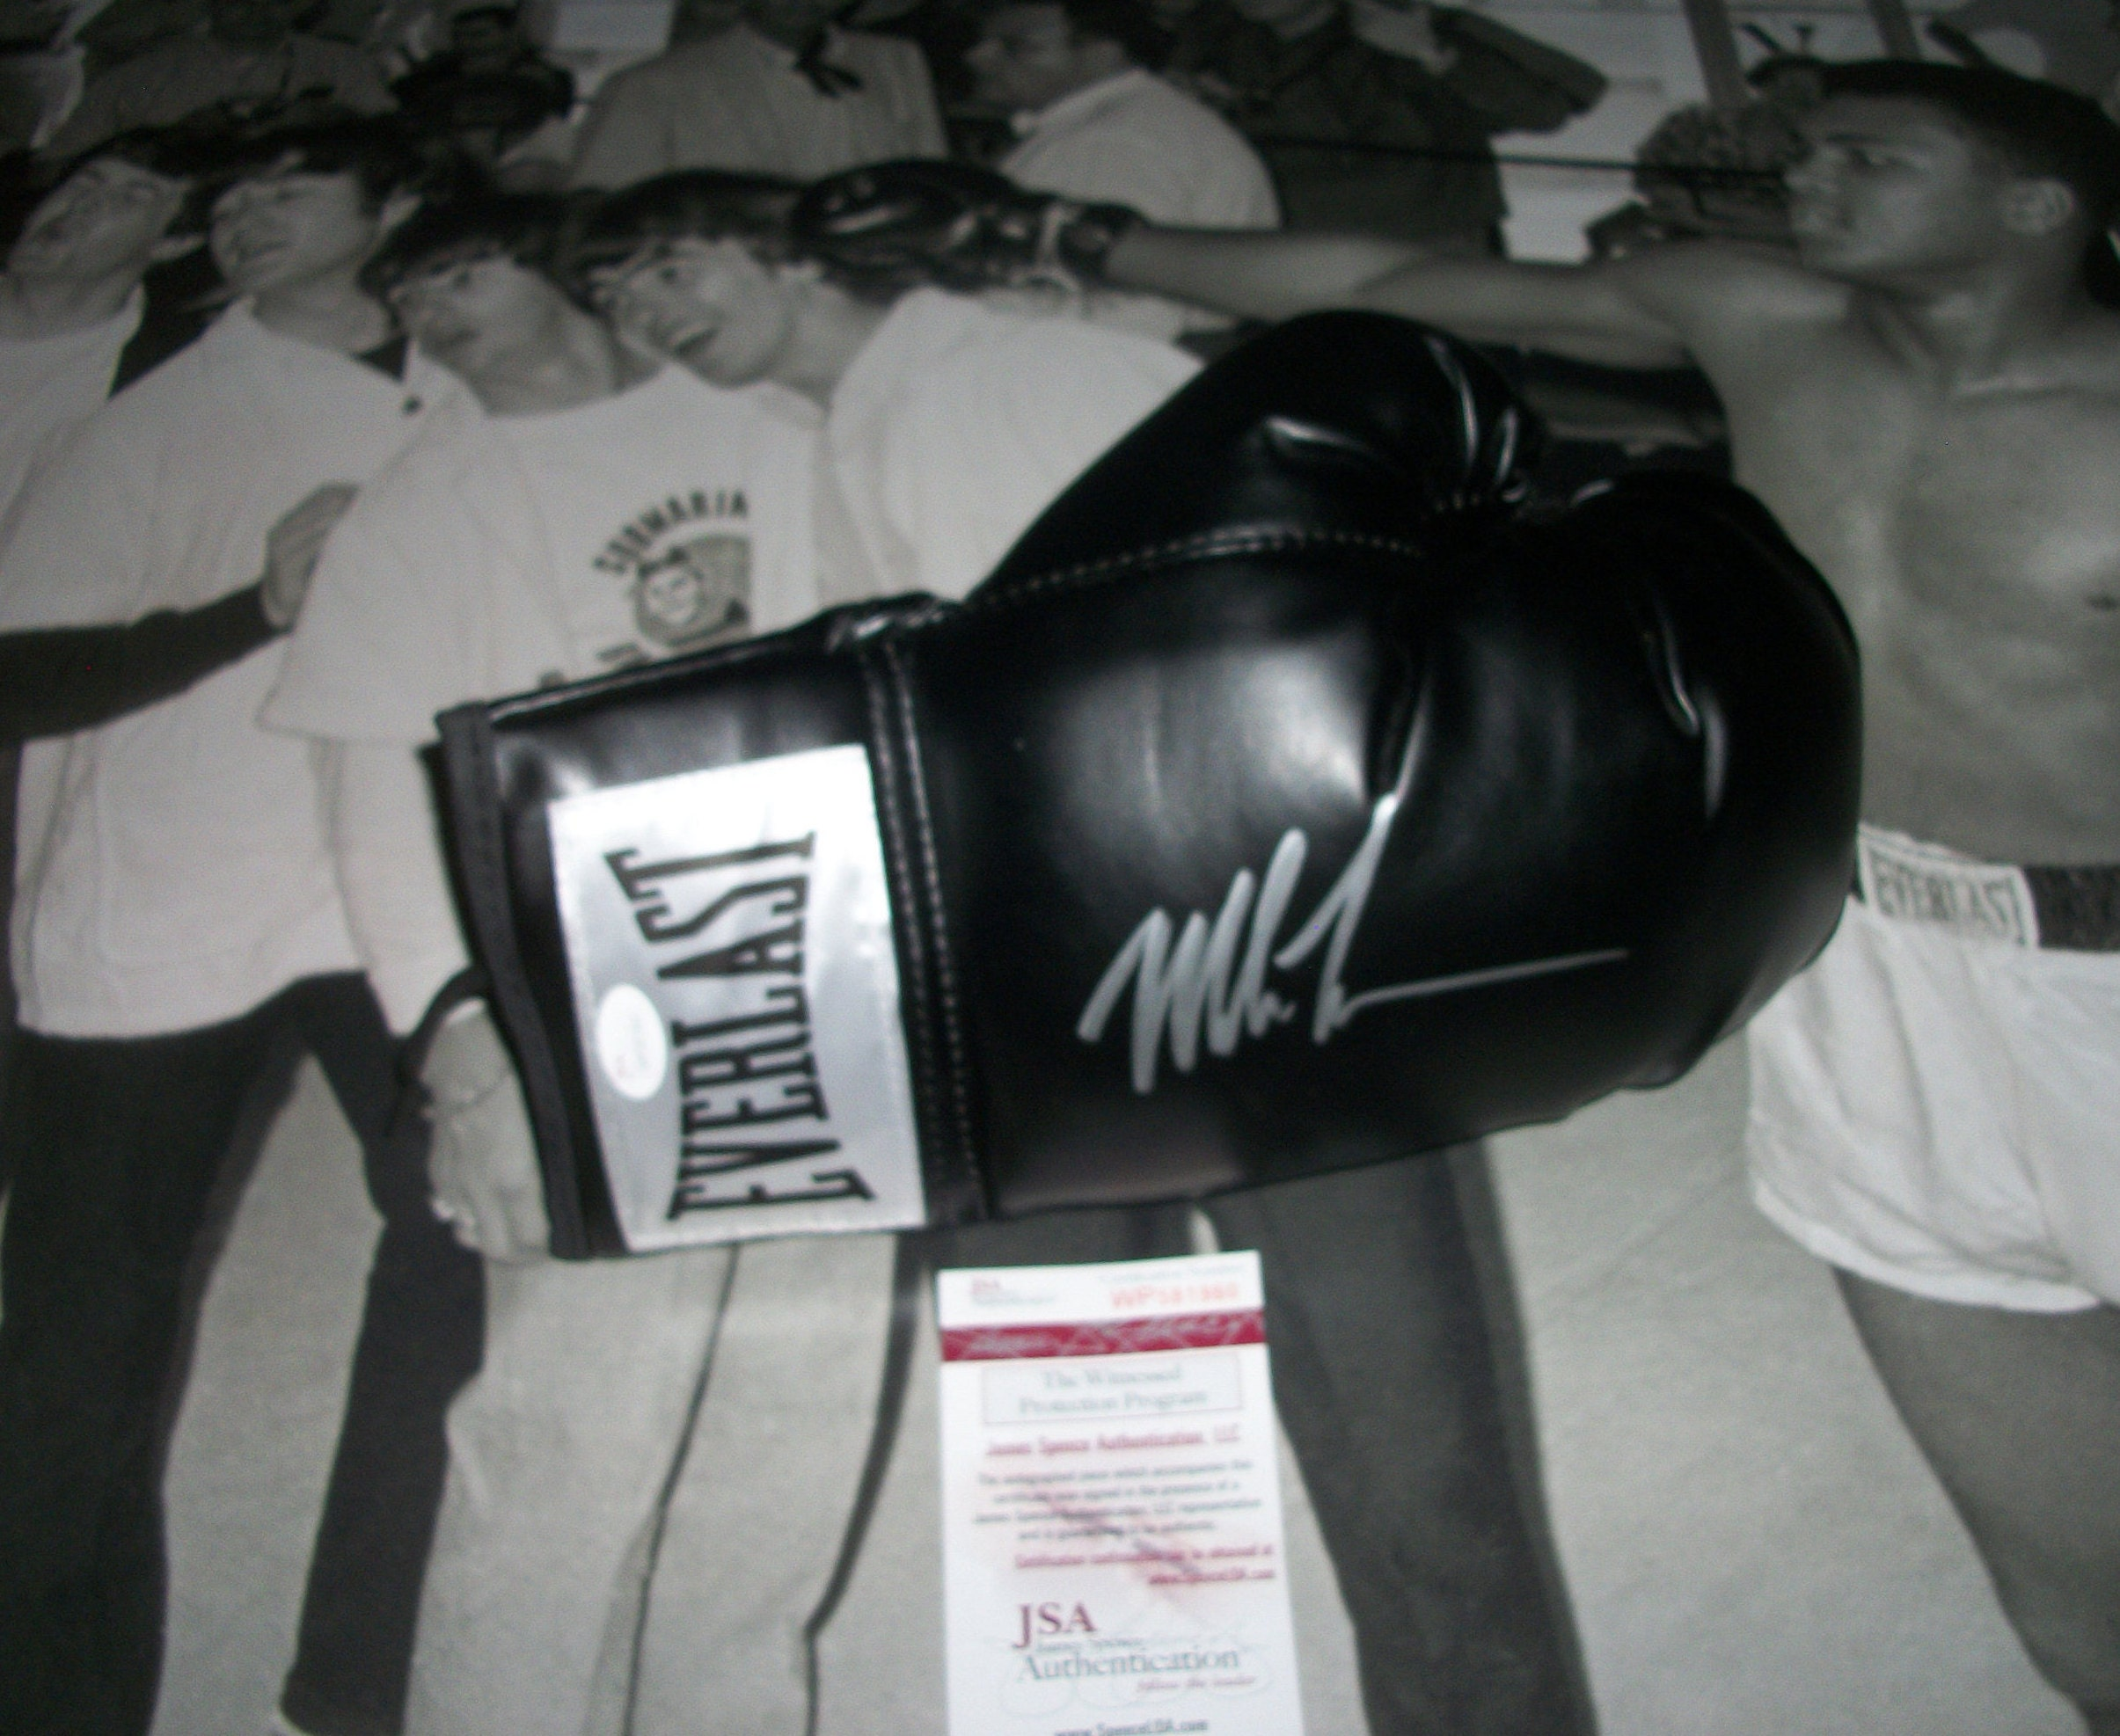 67f8979d0ce Mike Tyson Signed Autographed Black Everlast Full-Size Boxing Glove with  Display Case! (JSA COA)  WP581960